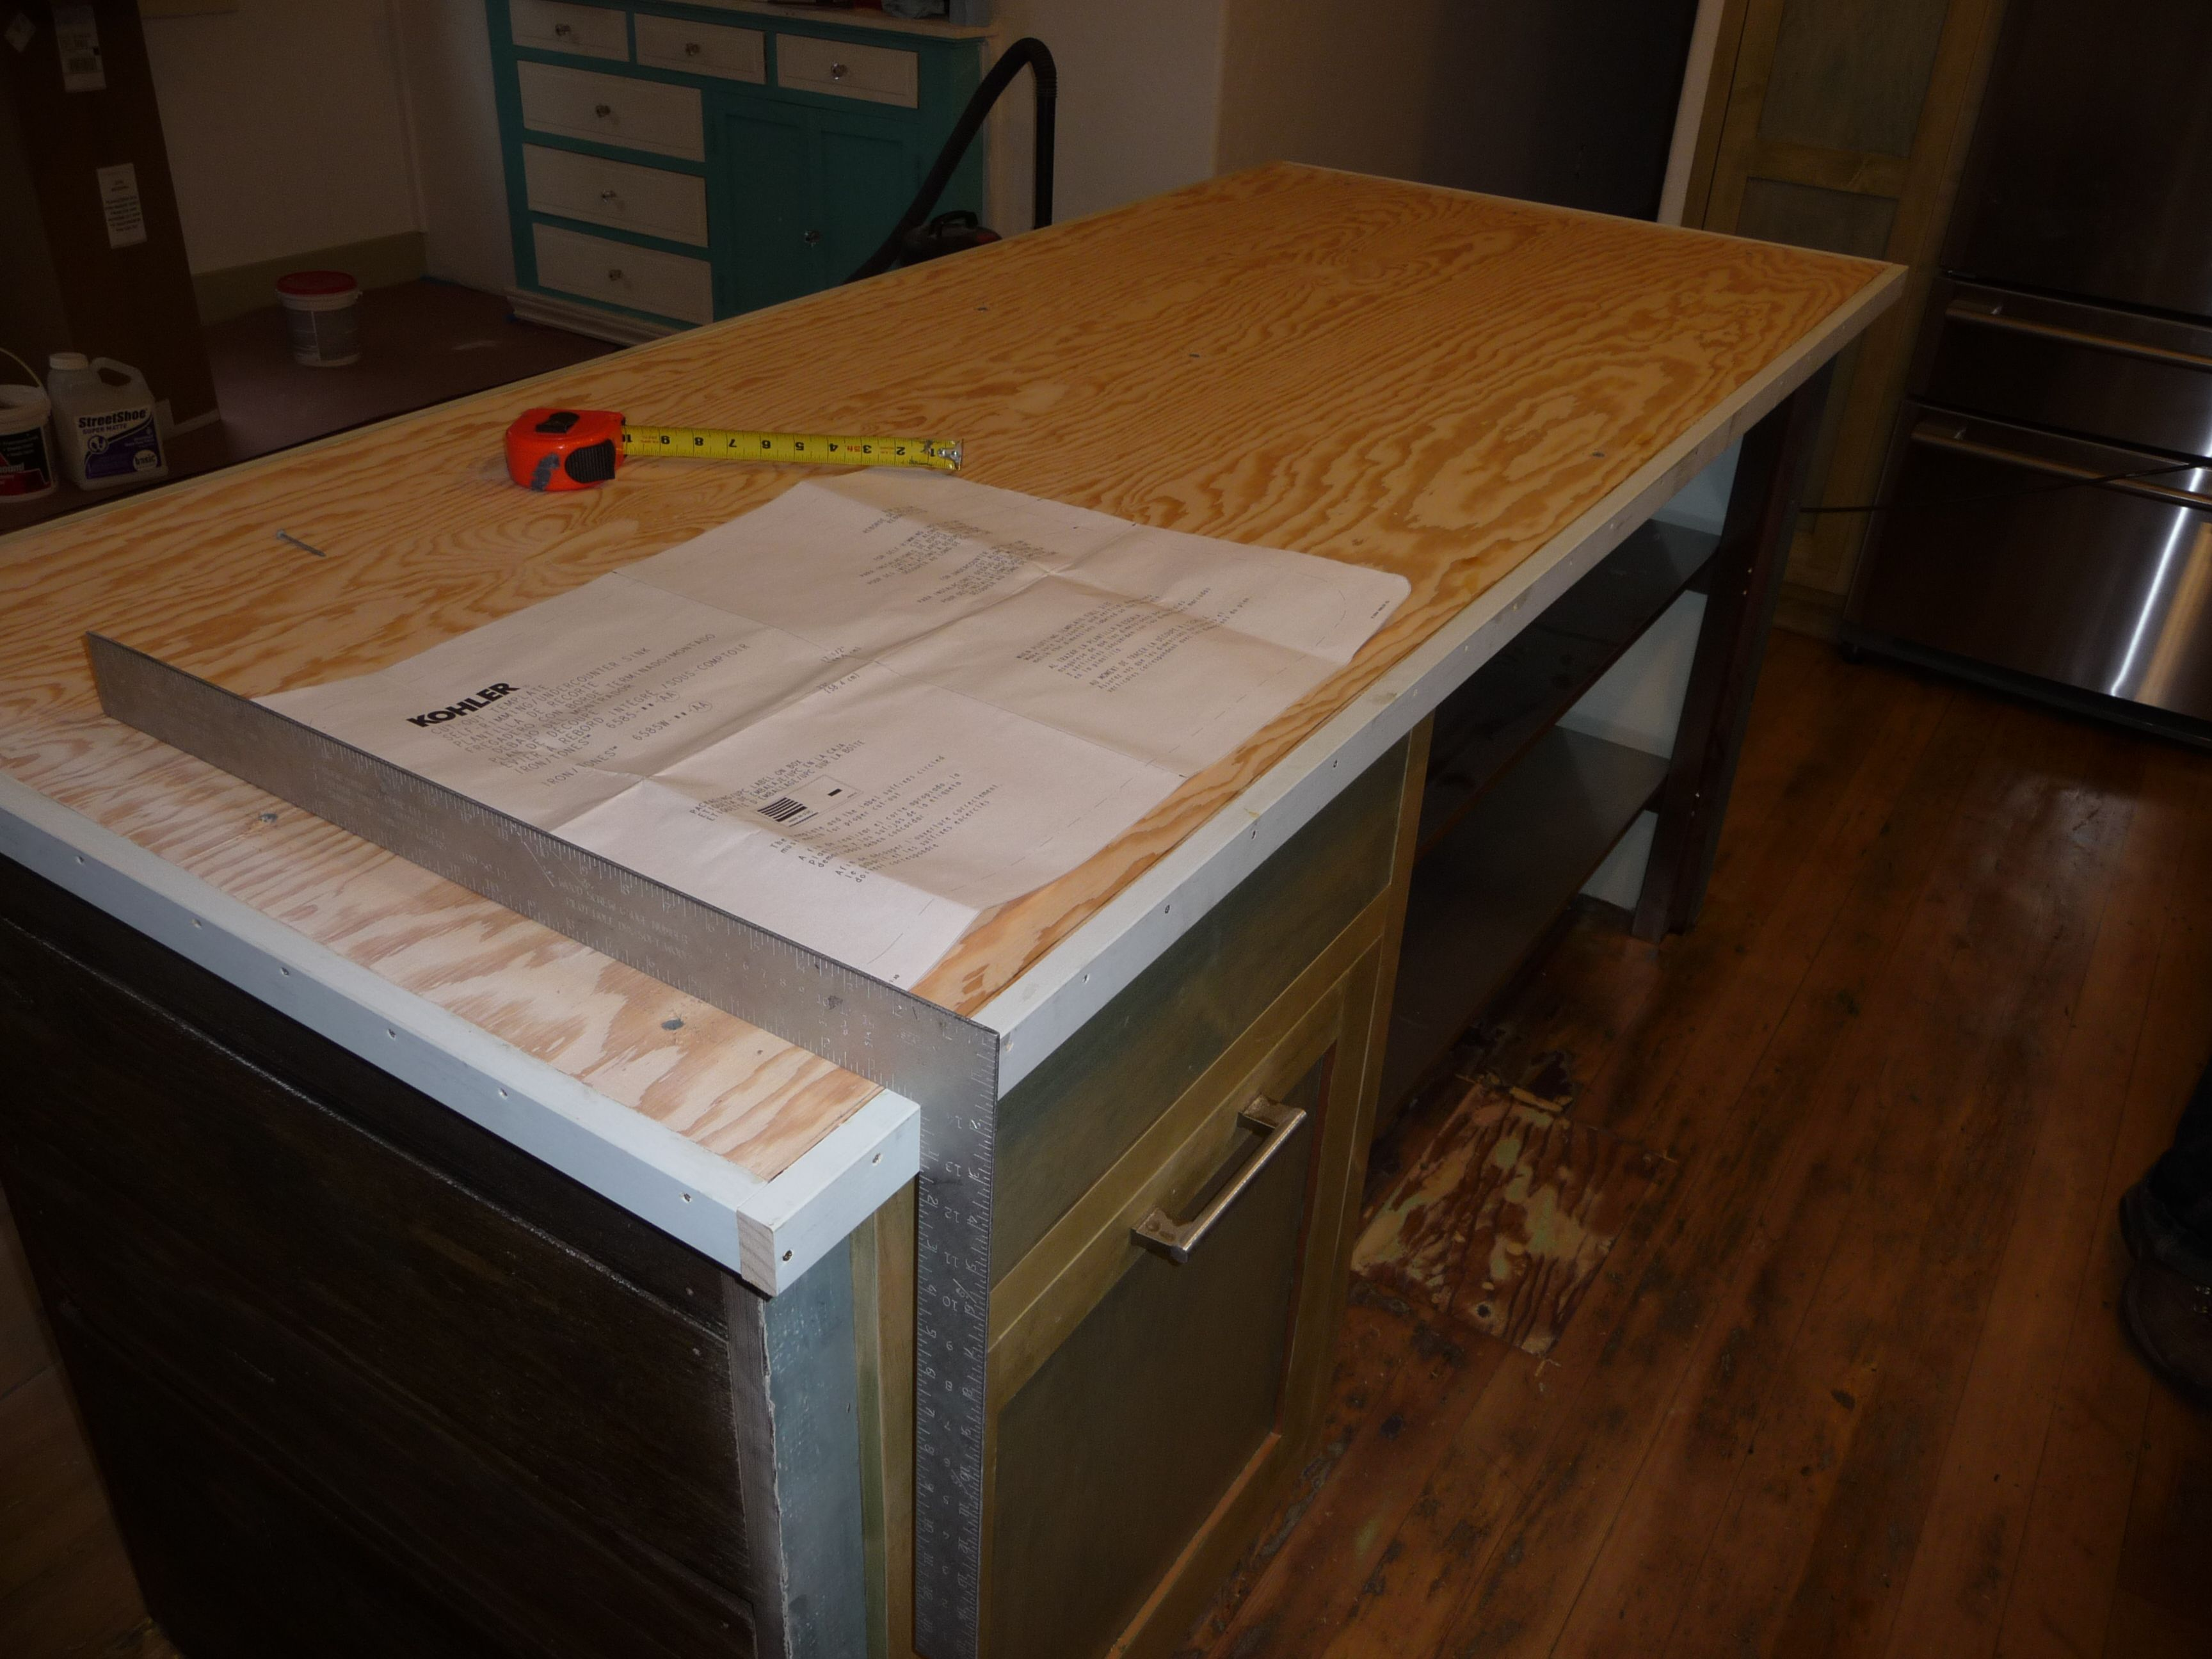 Charmant DIY Zinc Countertops Screw Paying $150 A Square Foot